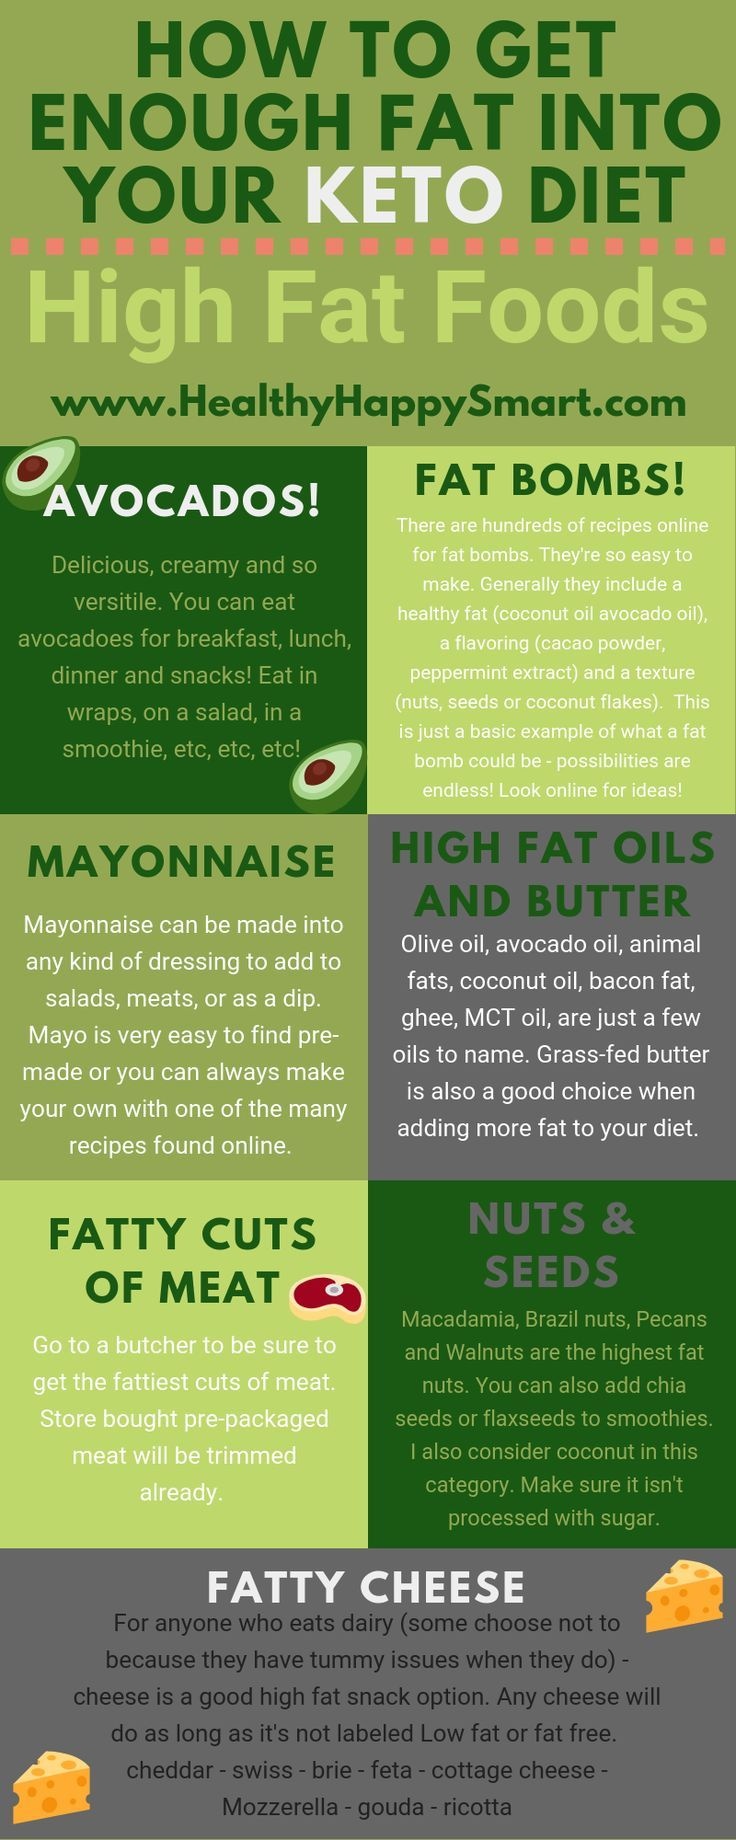 why the keto diet isnt good for you